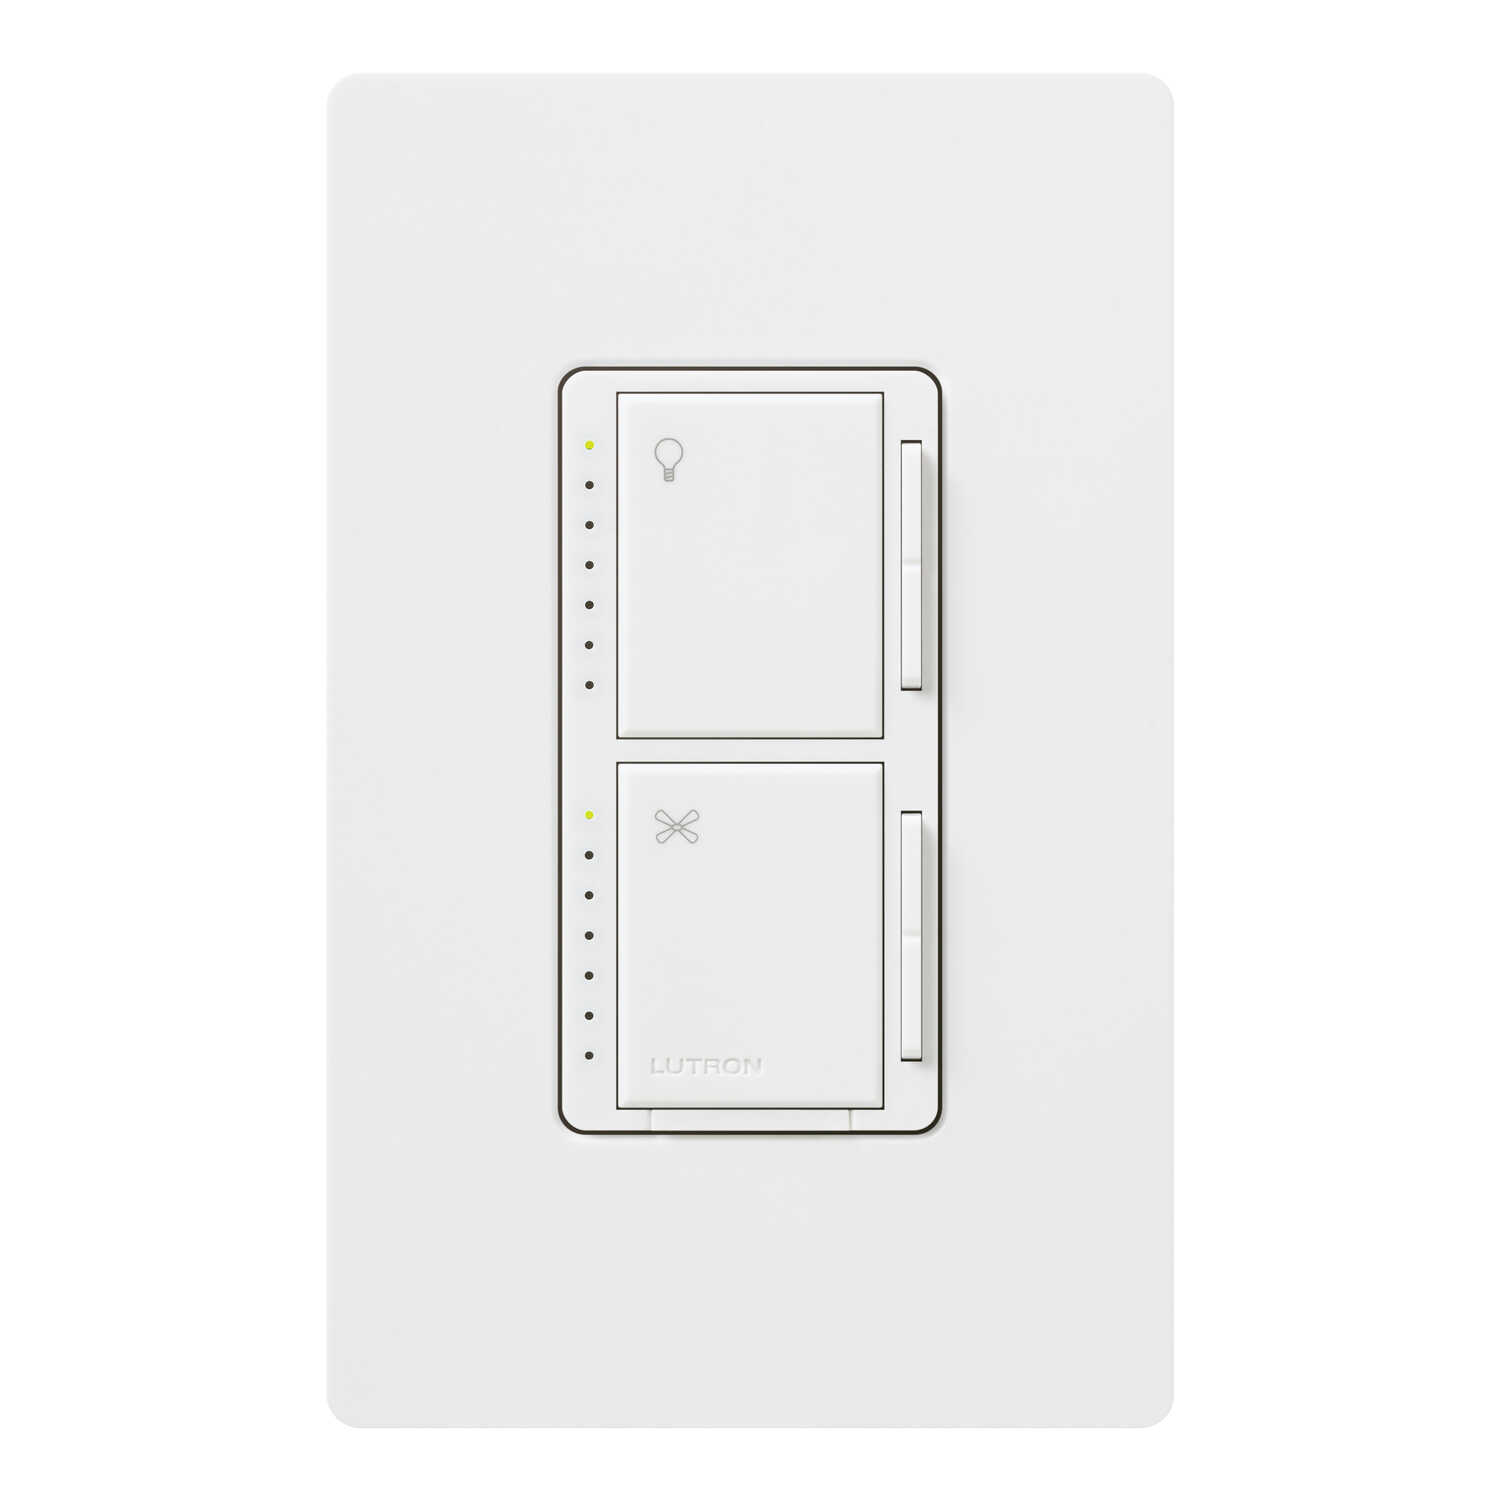 Lutron  Maestro  White  300 watts Dual Control  Dimmer Switch  1 pk